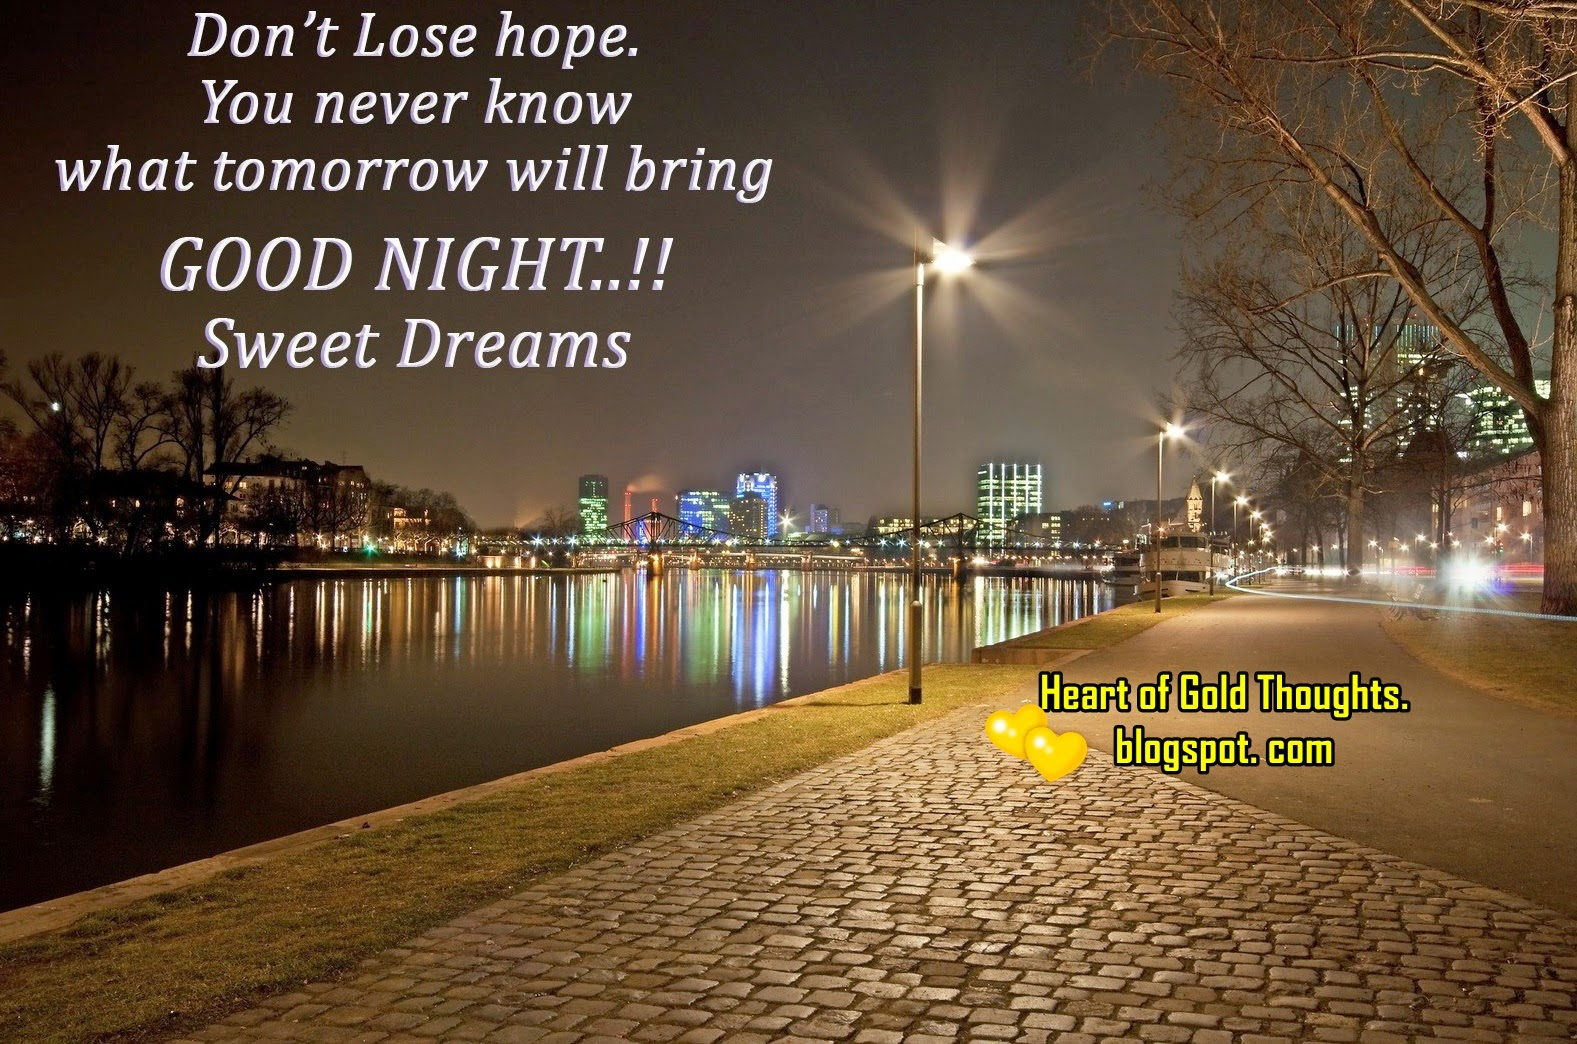 Don´t lose hope. You never know what tomorrow will bring. GOOD NIGHT!  Sweet Dreams.